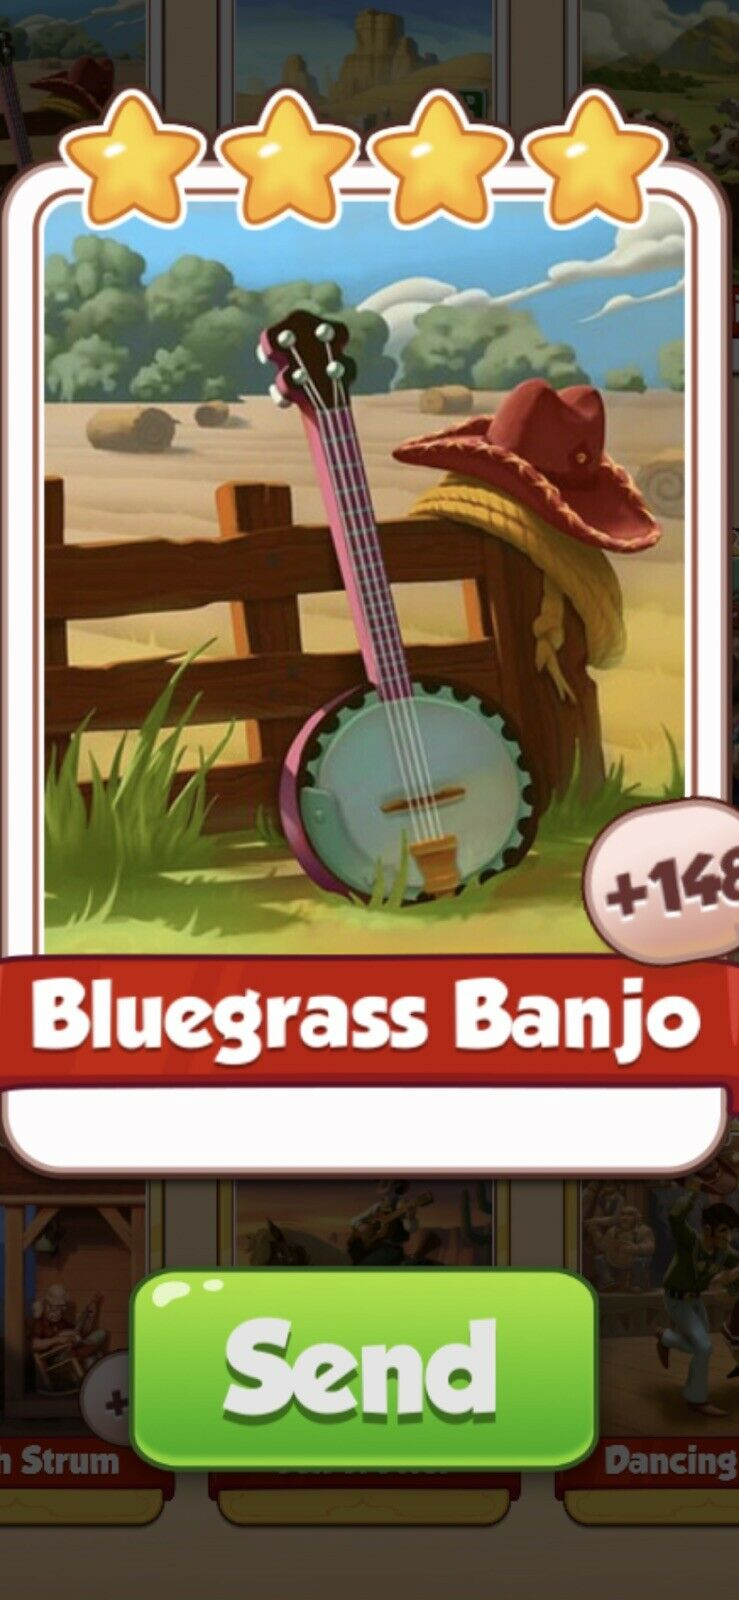 X 1 Bluegrass Banjo Cards from Country Folk Set Coin Master Card ( Fast Send )